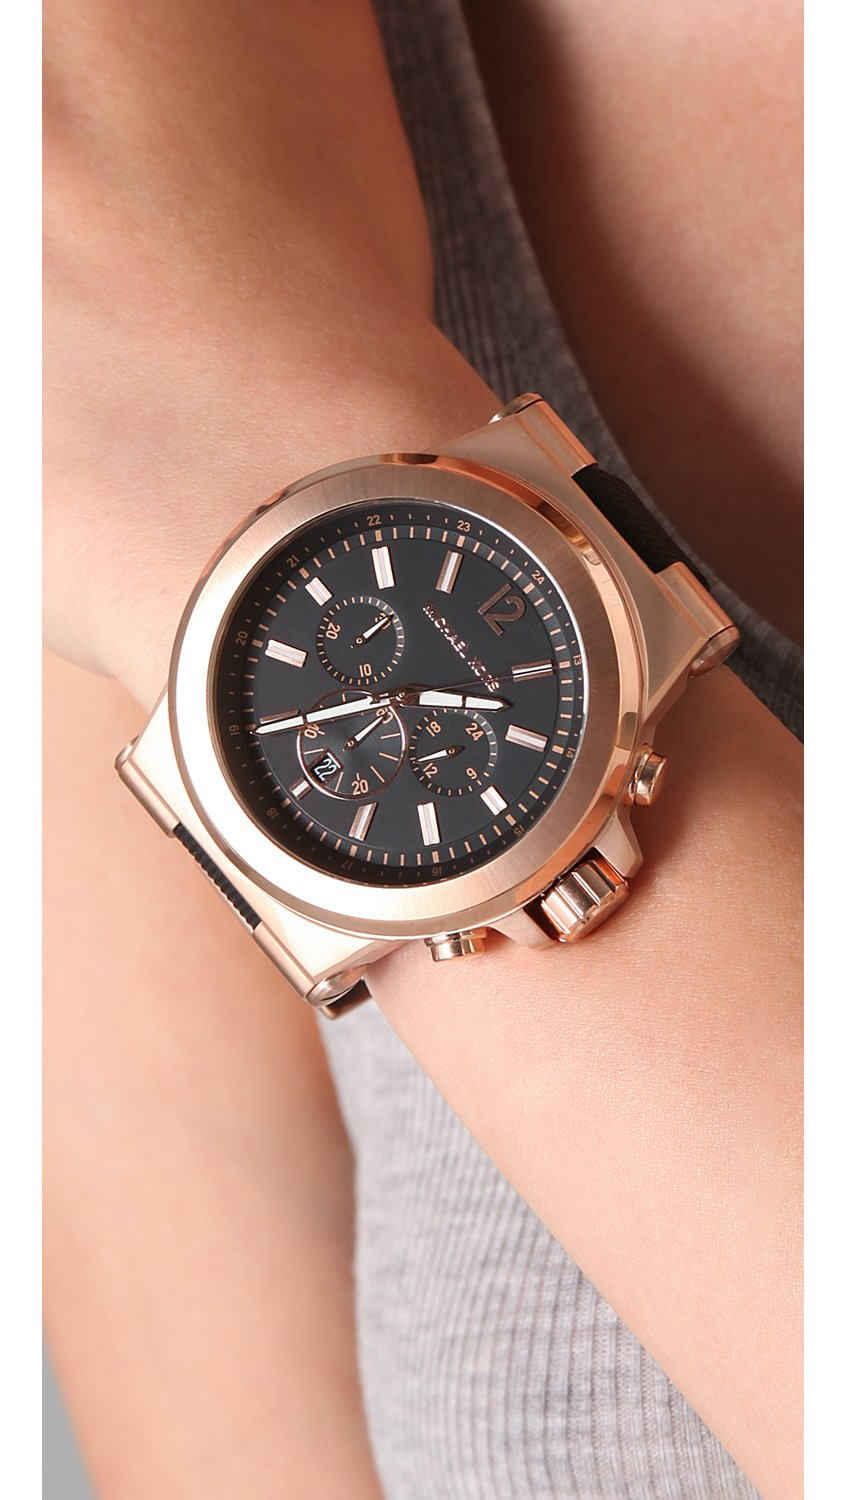 Watch Videos Music And Live Streams On The App: Michael Kors Large Dylan Watch